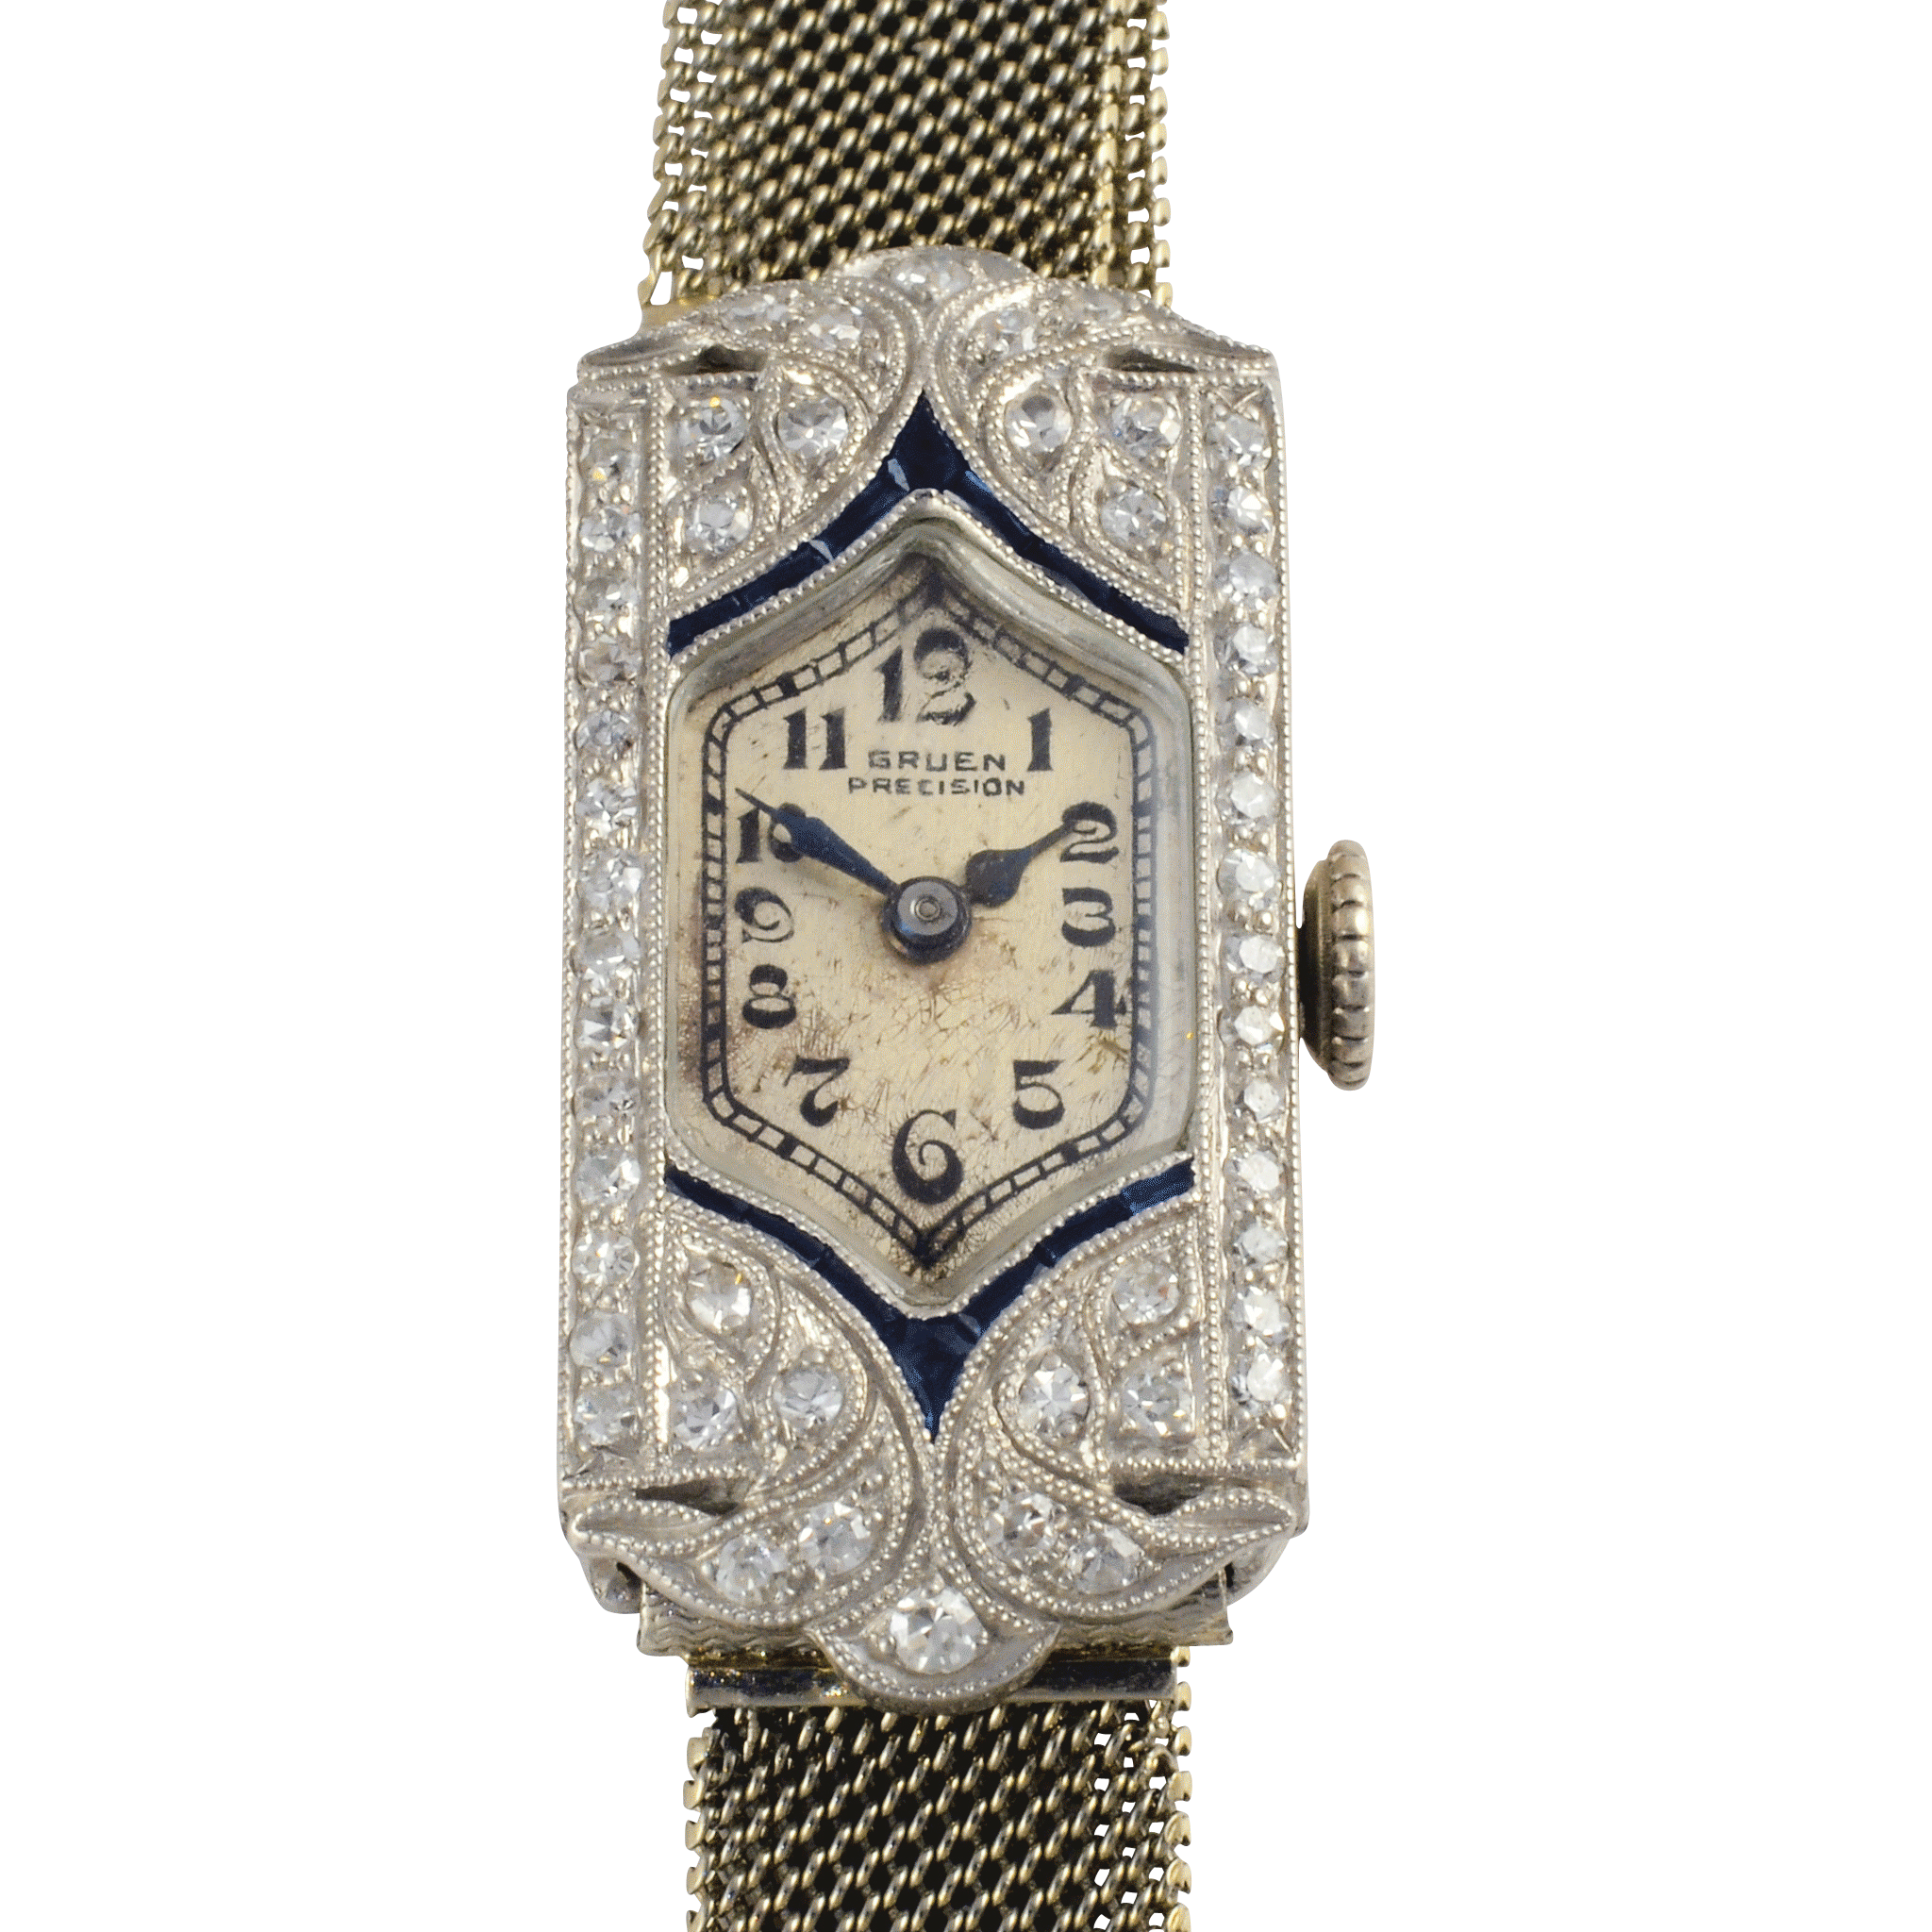 1.25 CTW Diamond and Sapphire Art Deco Ladies Wrist Watch by Gruen